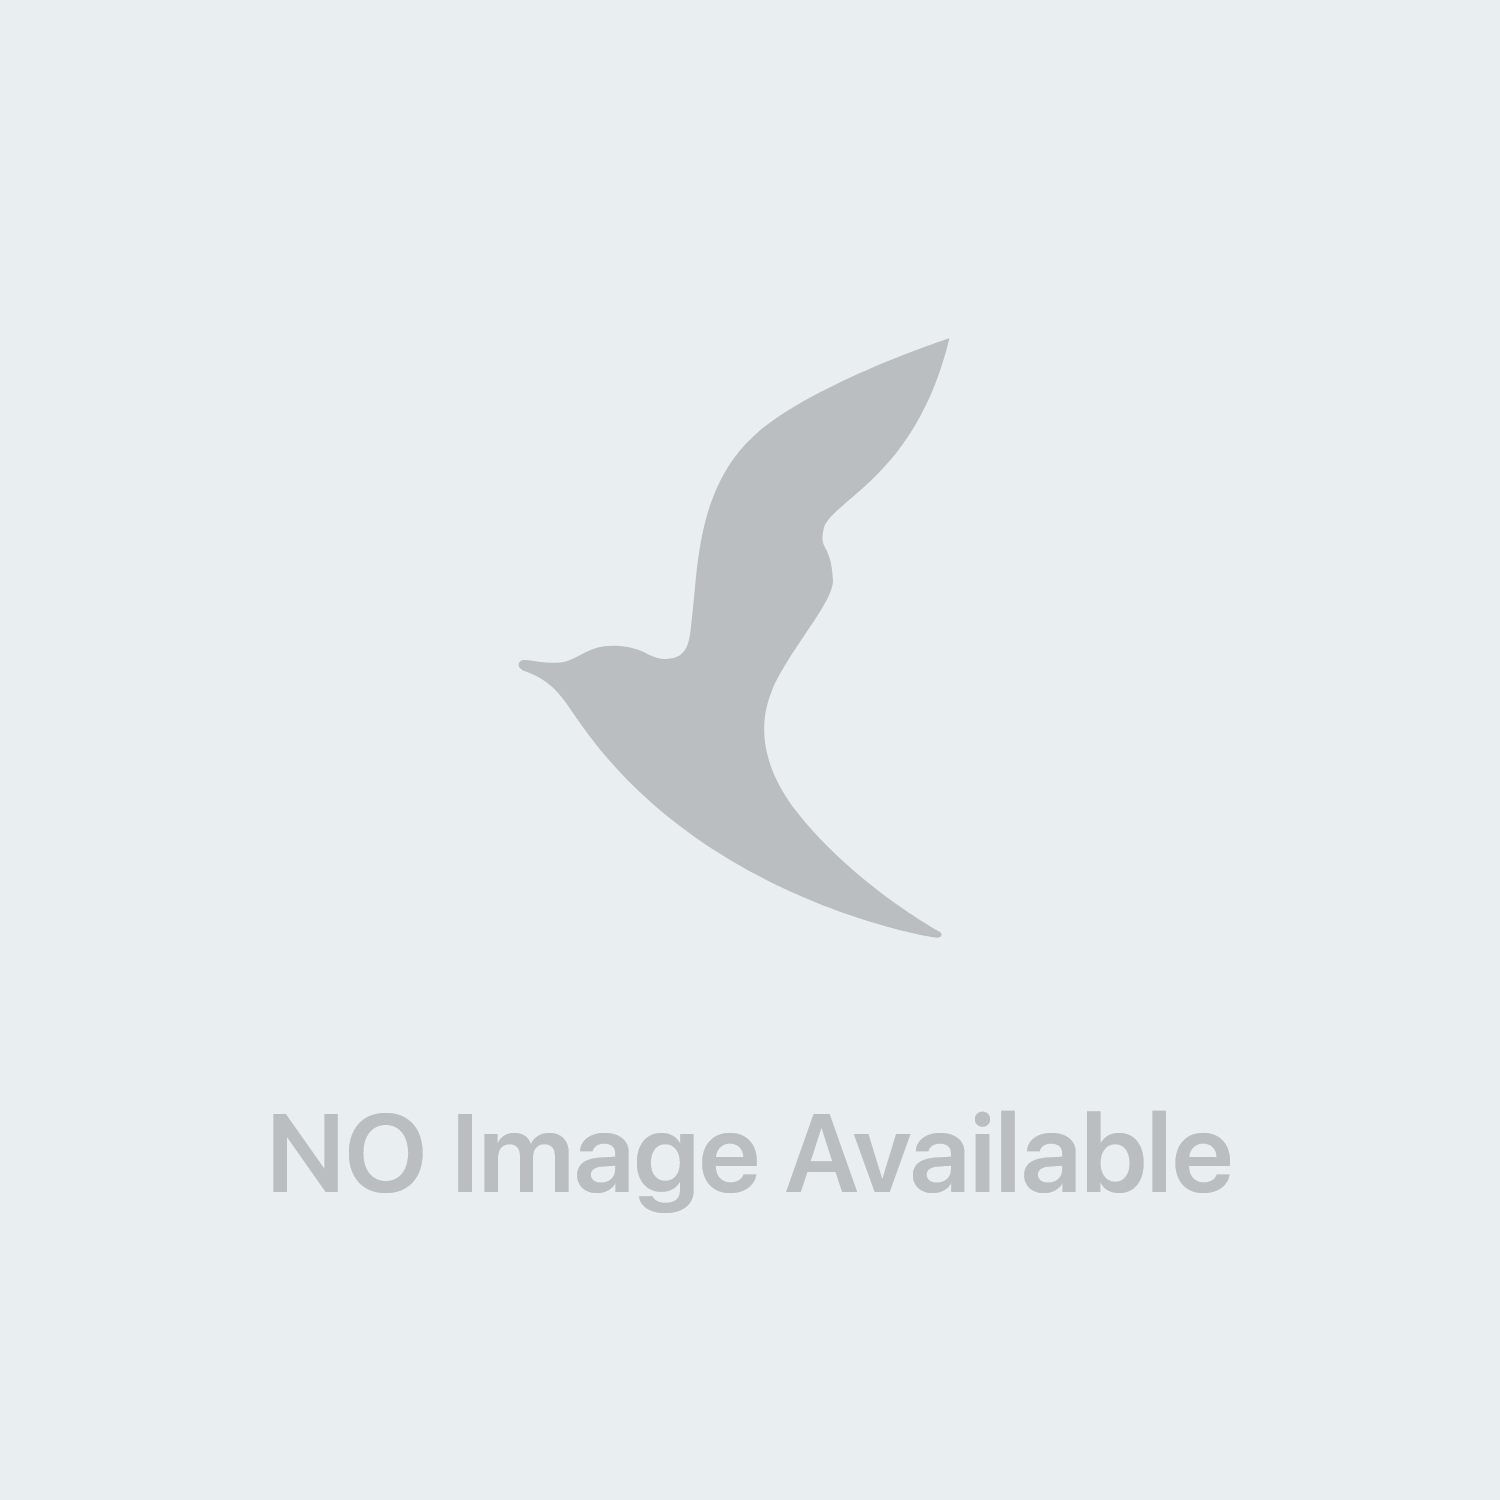 Fidia Wet Gel Nasale Idratante 20 Ml